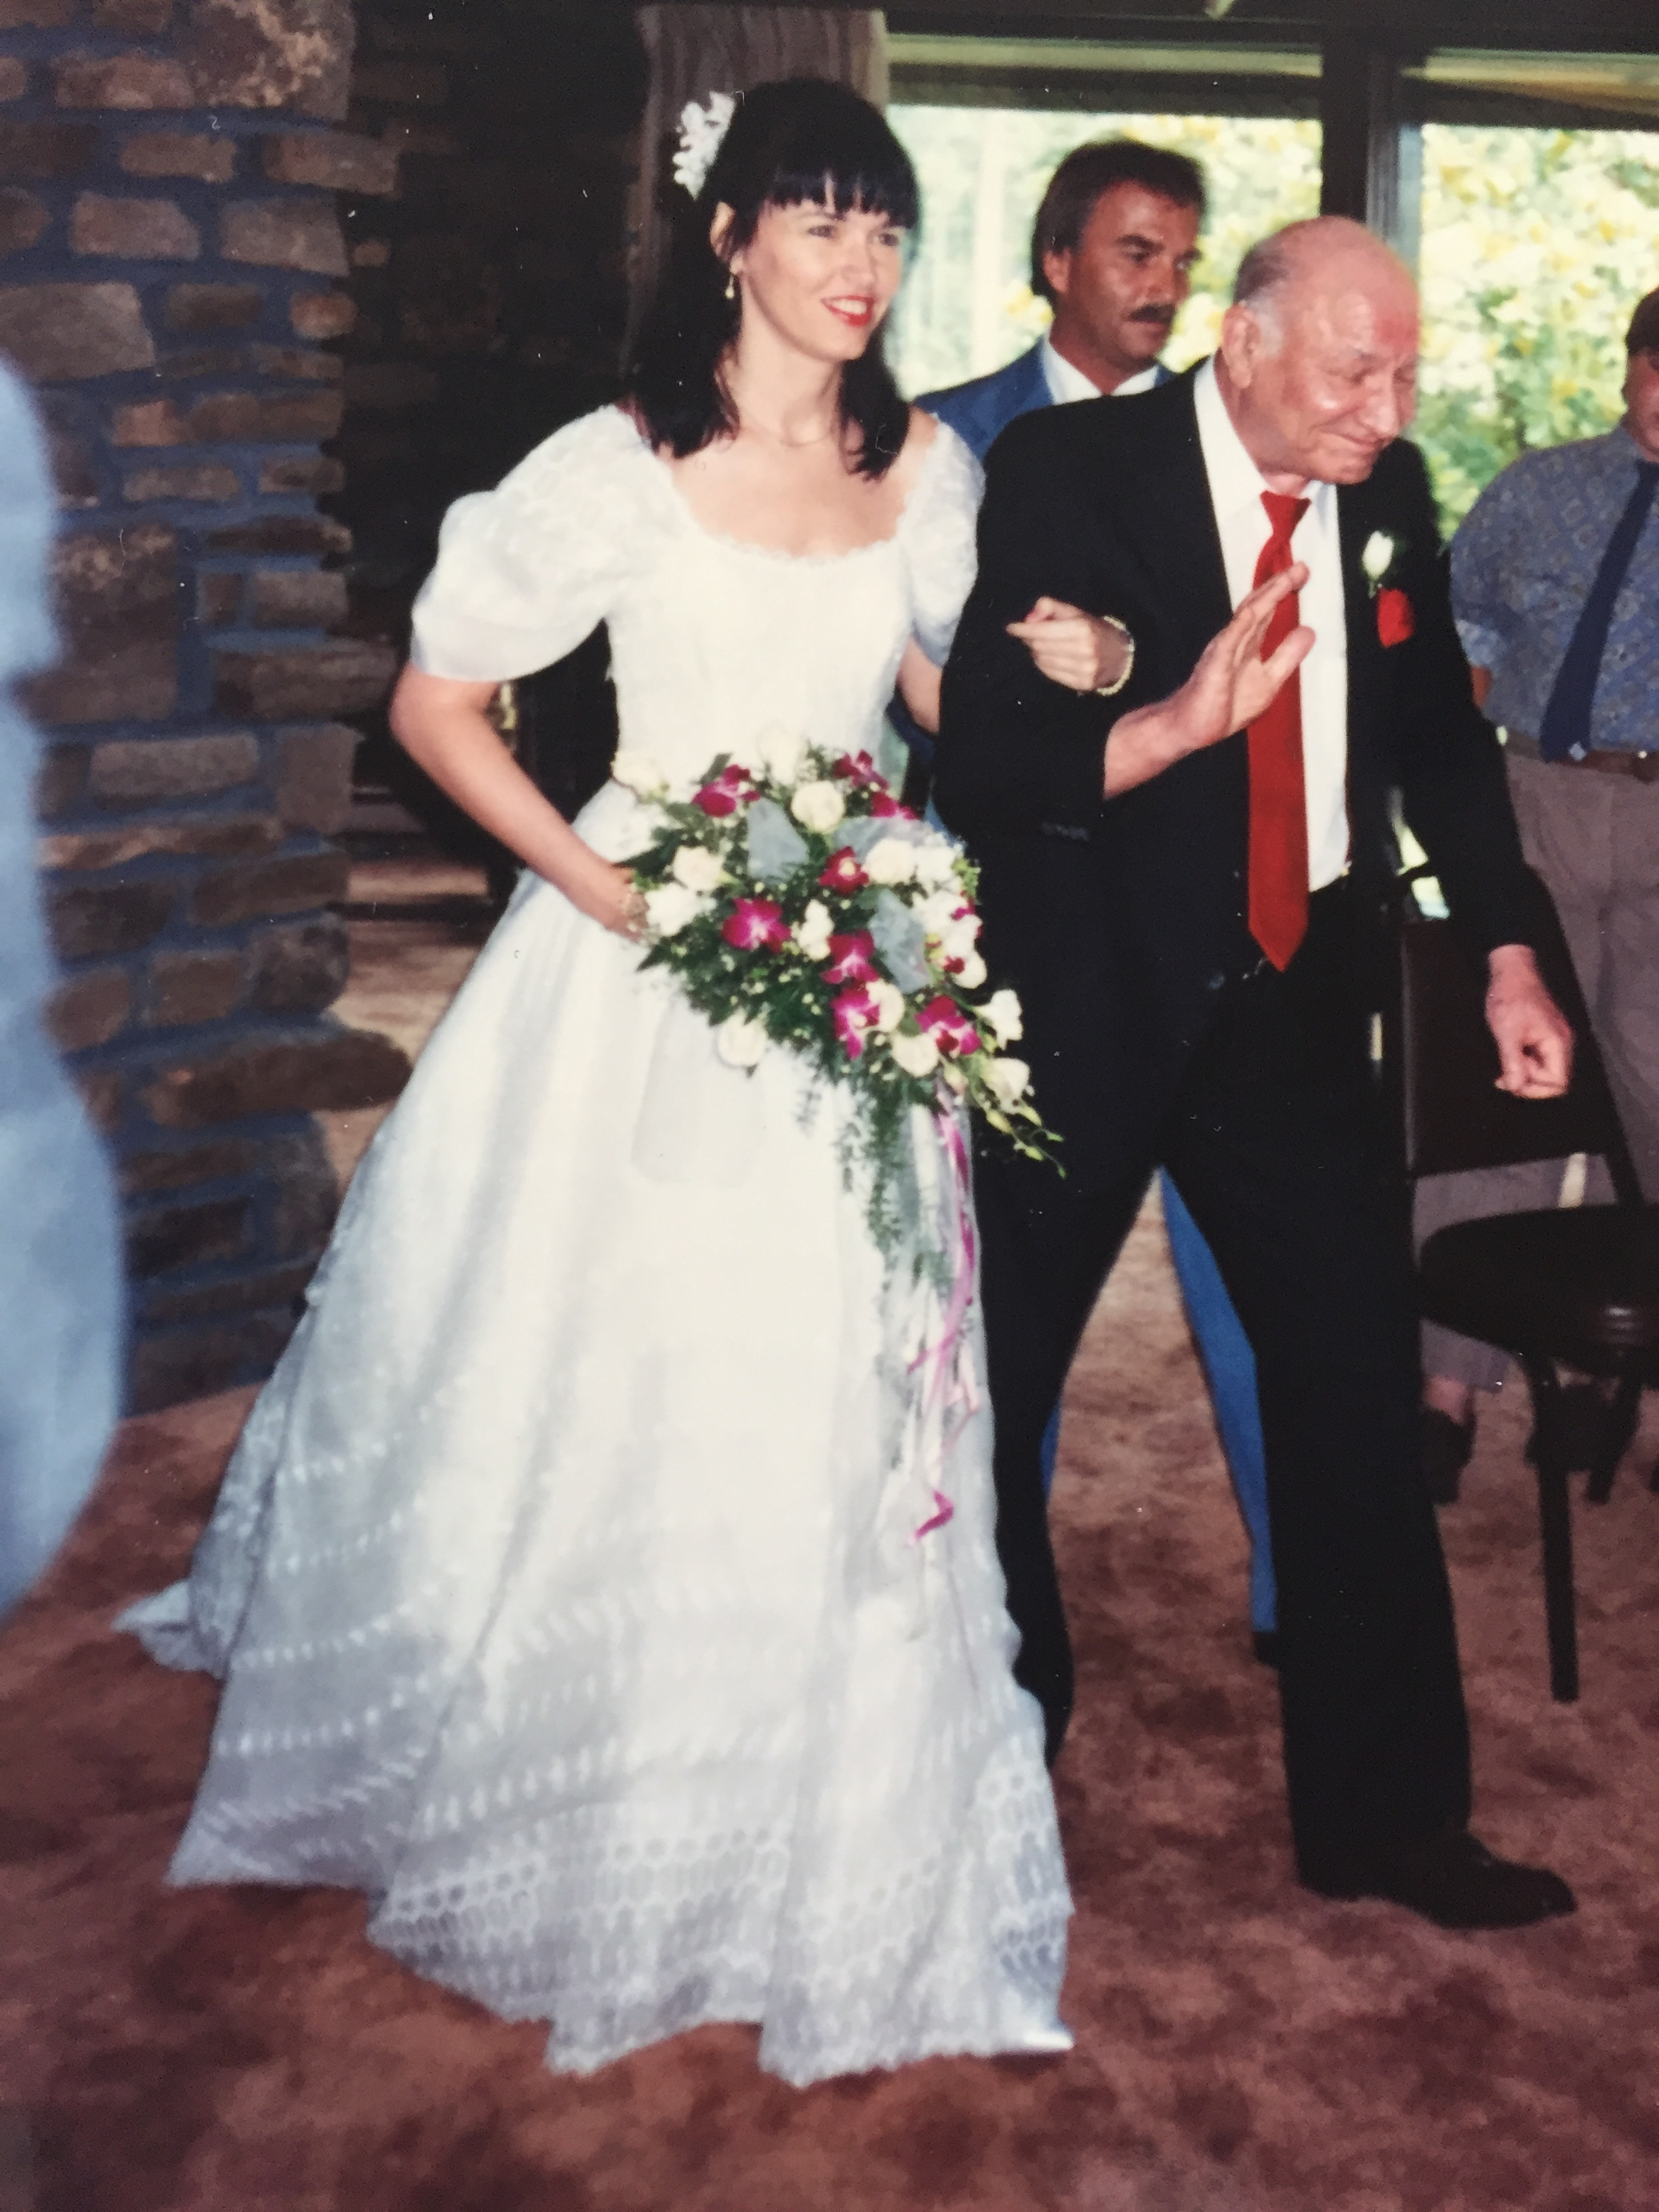 My dad makes it down the aisle, with my brother Tom behind him just in case. Thank you Tom.